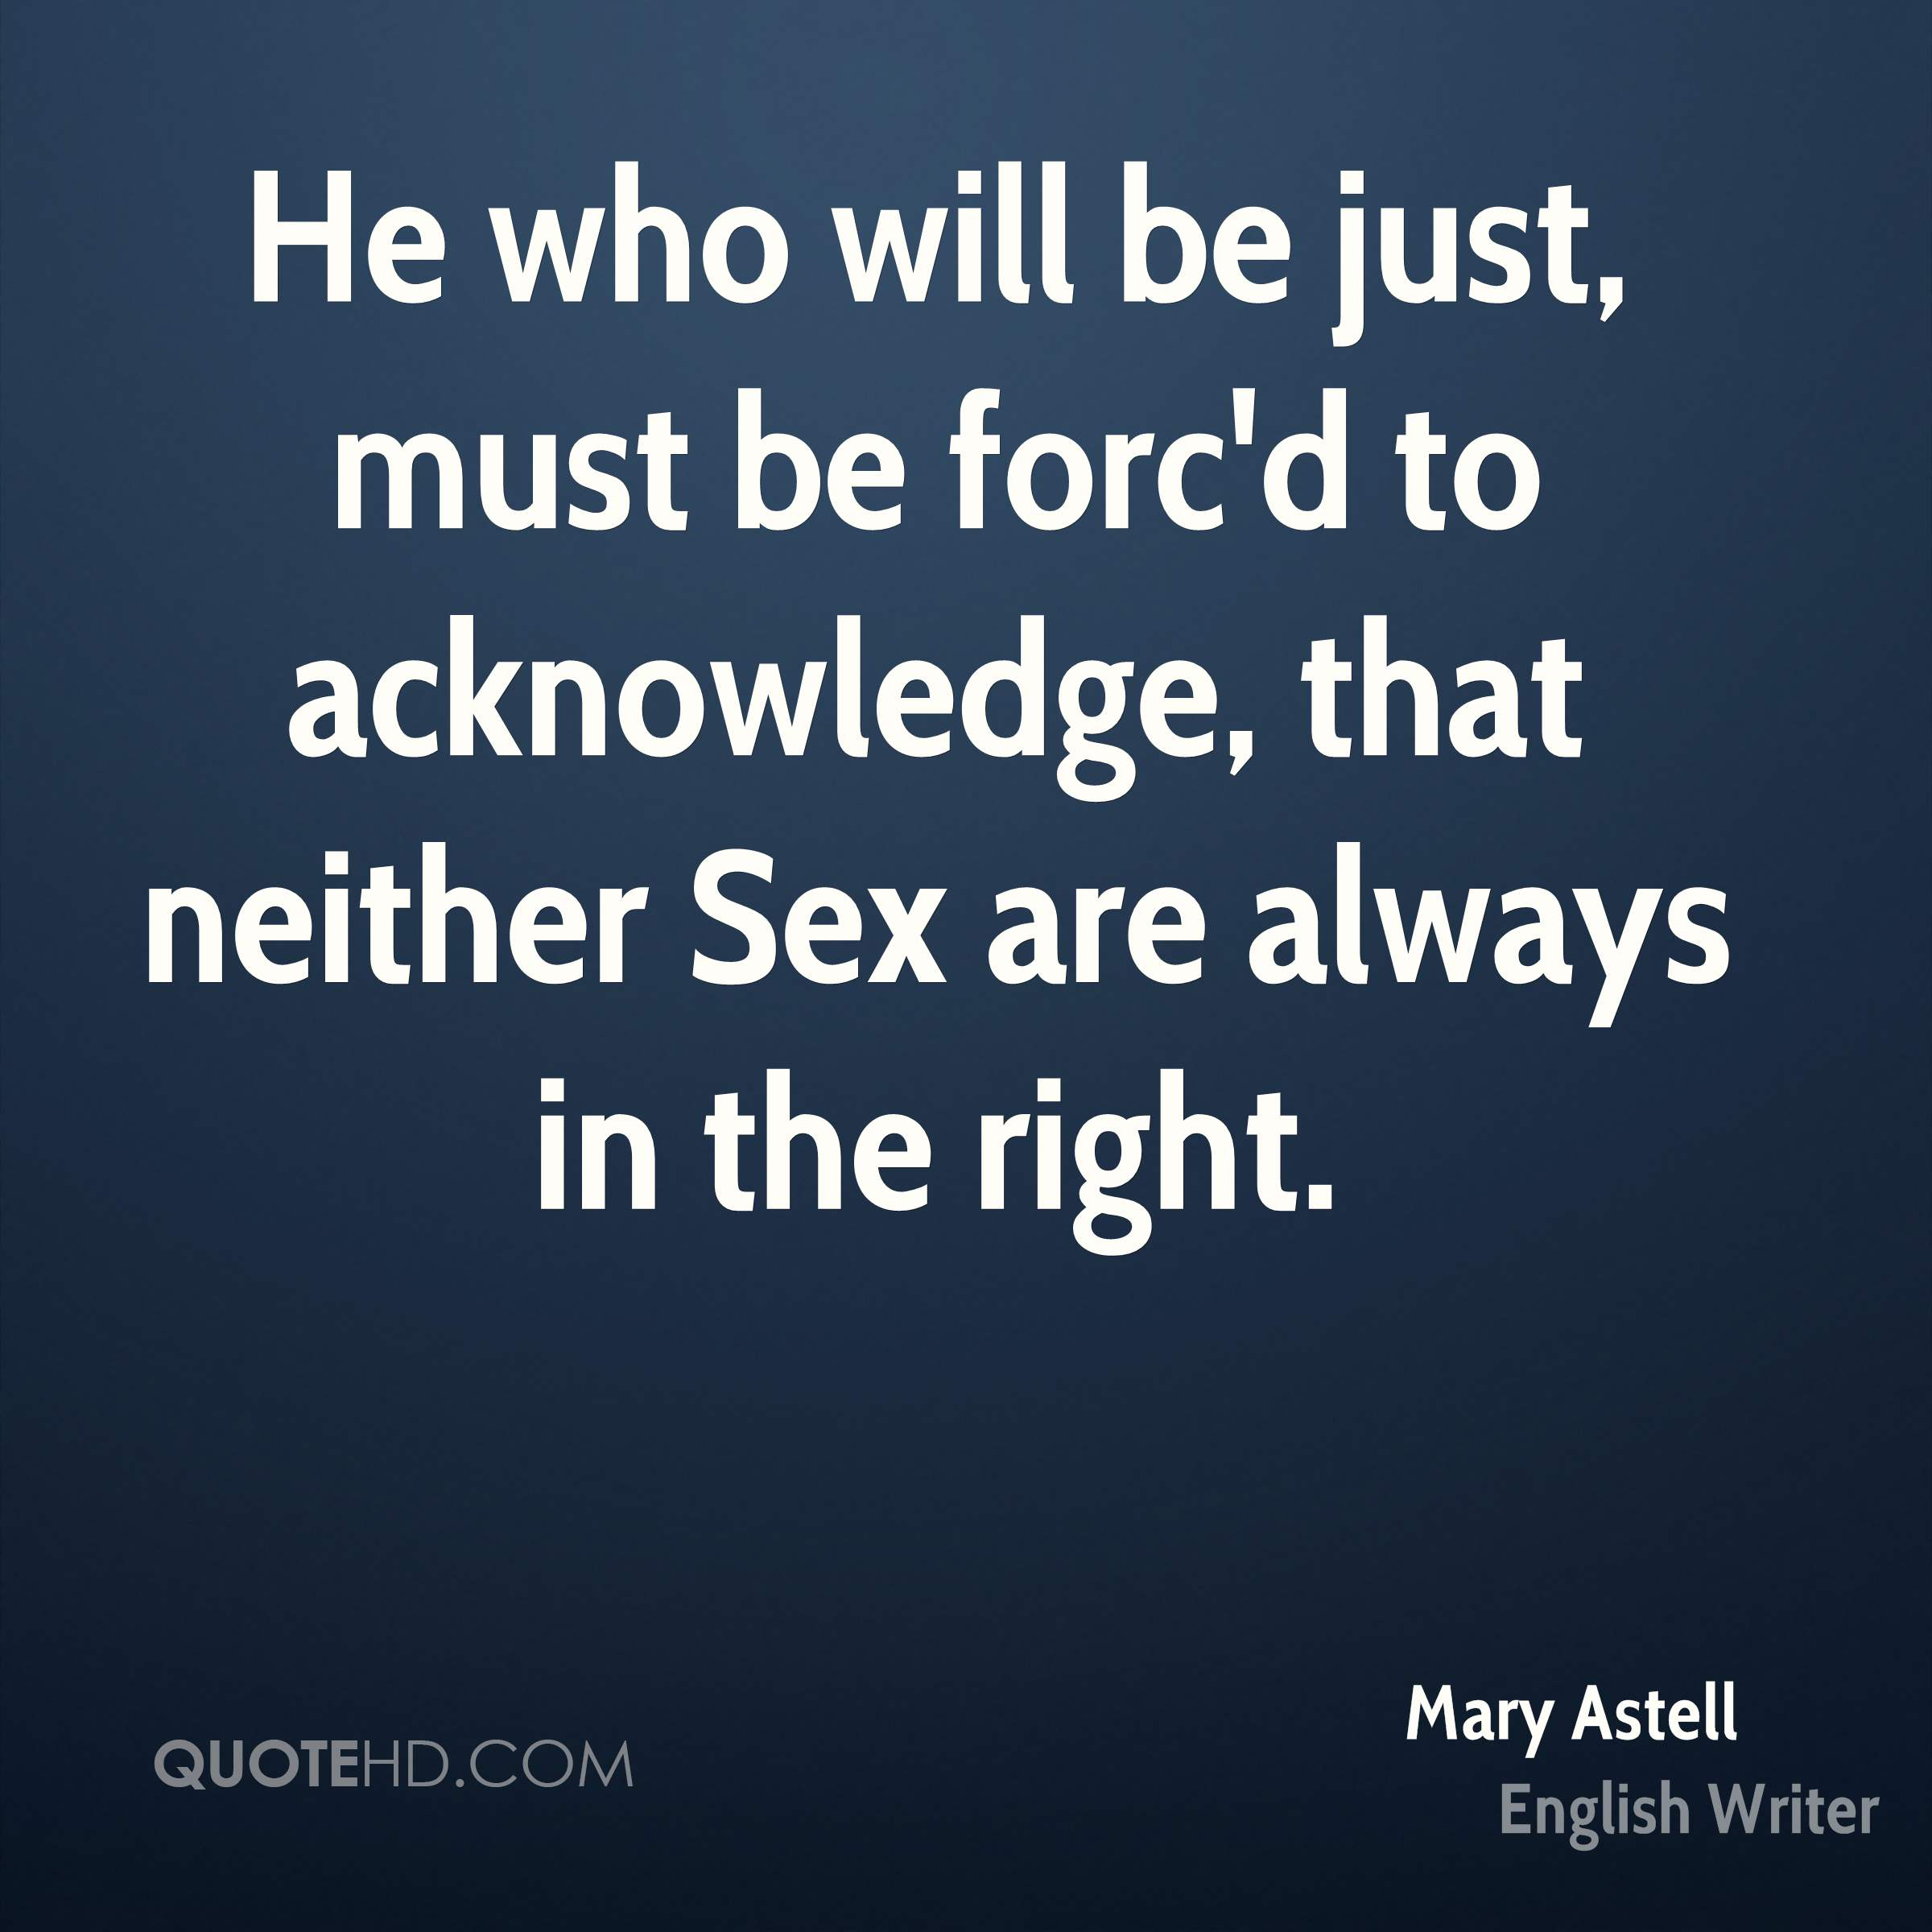 He who will be just, must be forc'd to acknowledge, that neither Sex are always in the right.